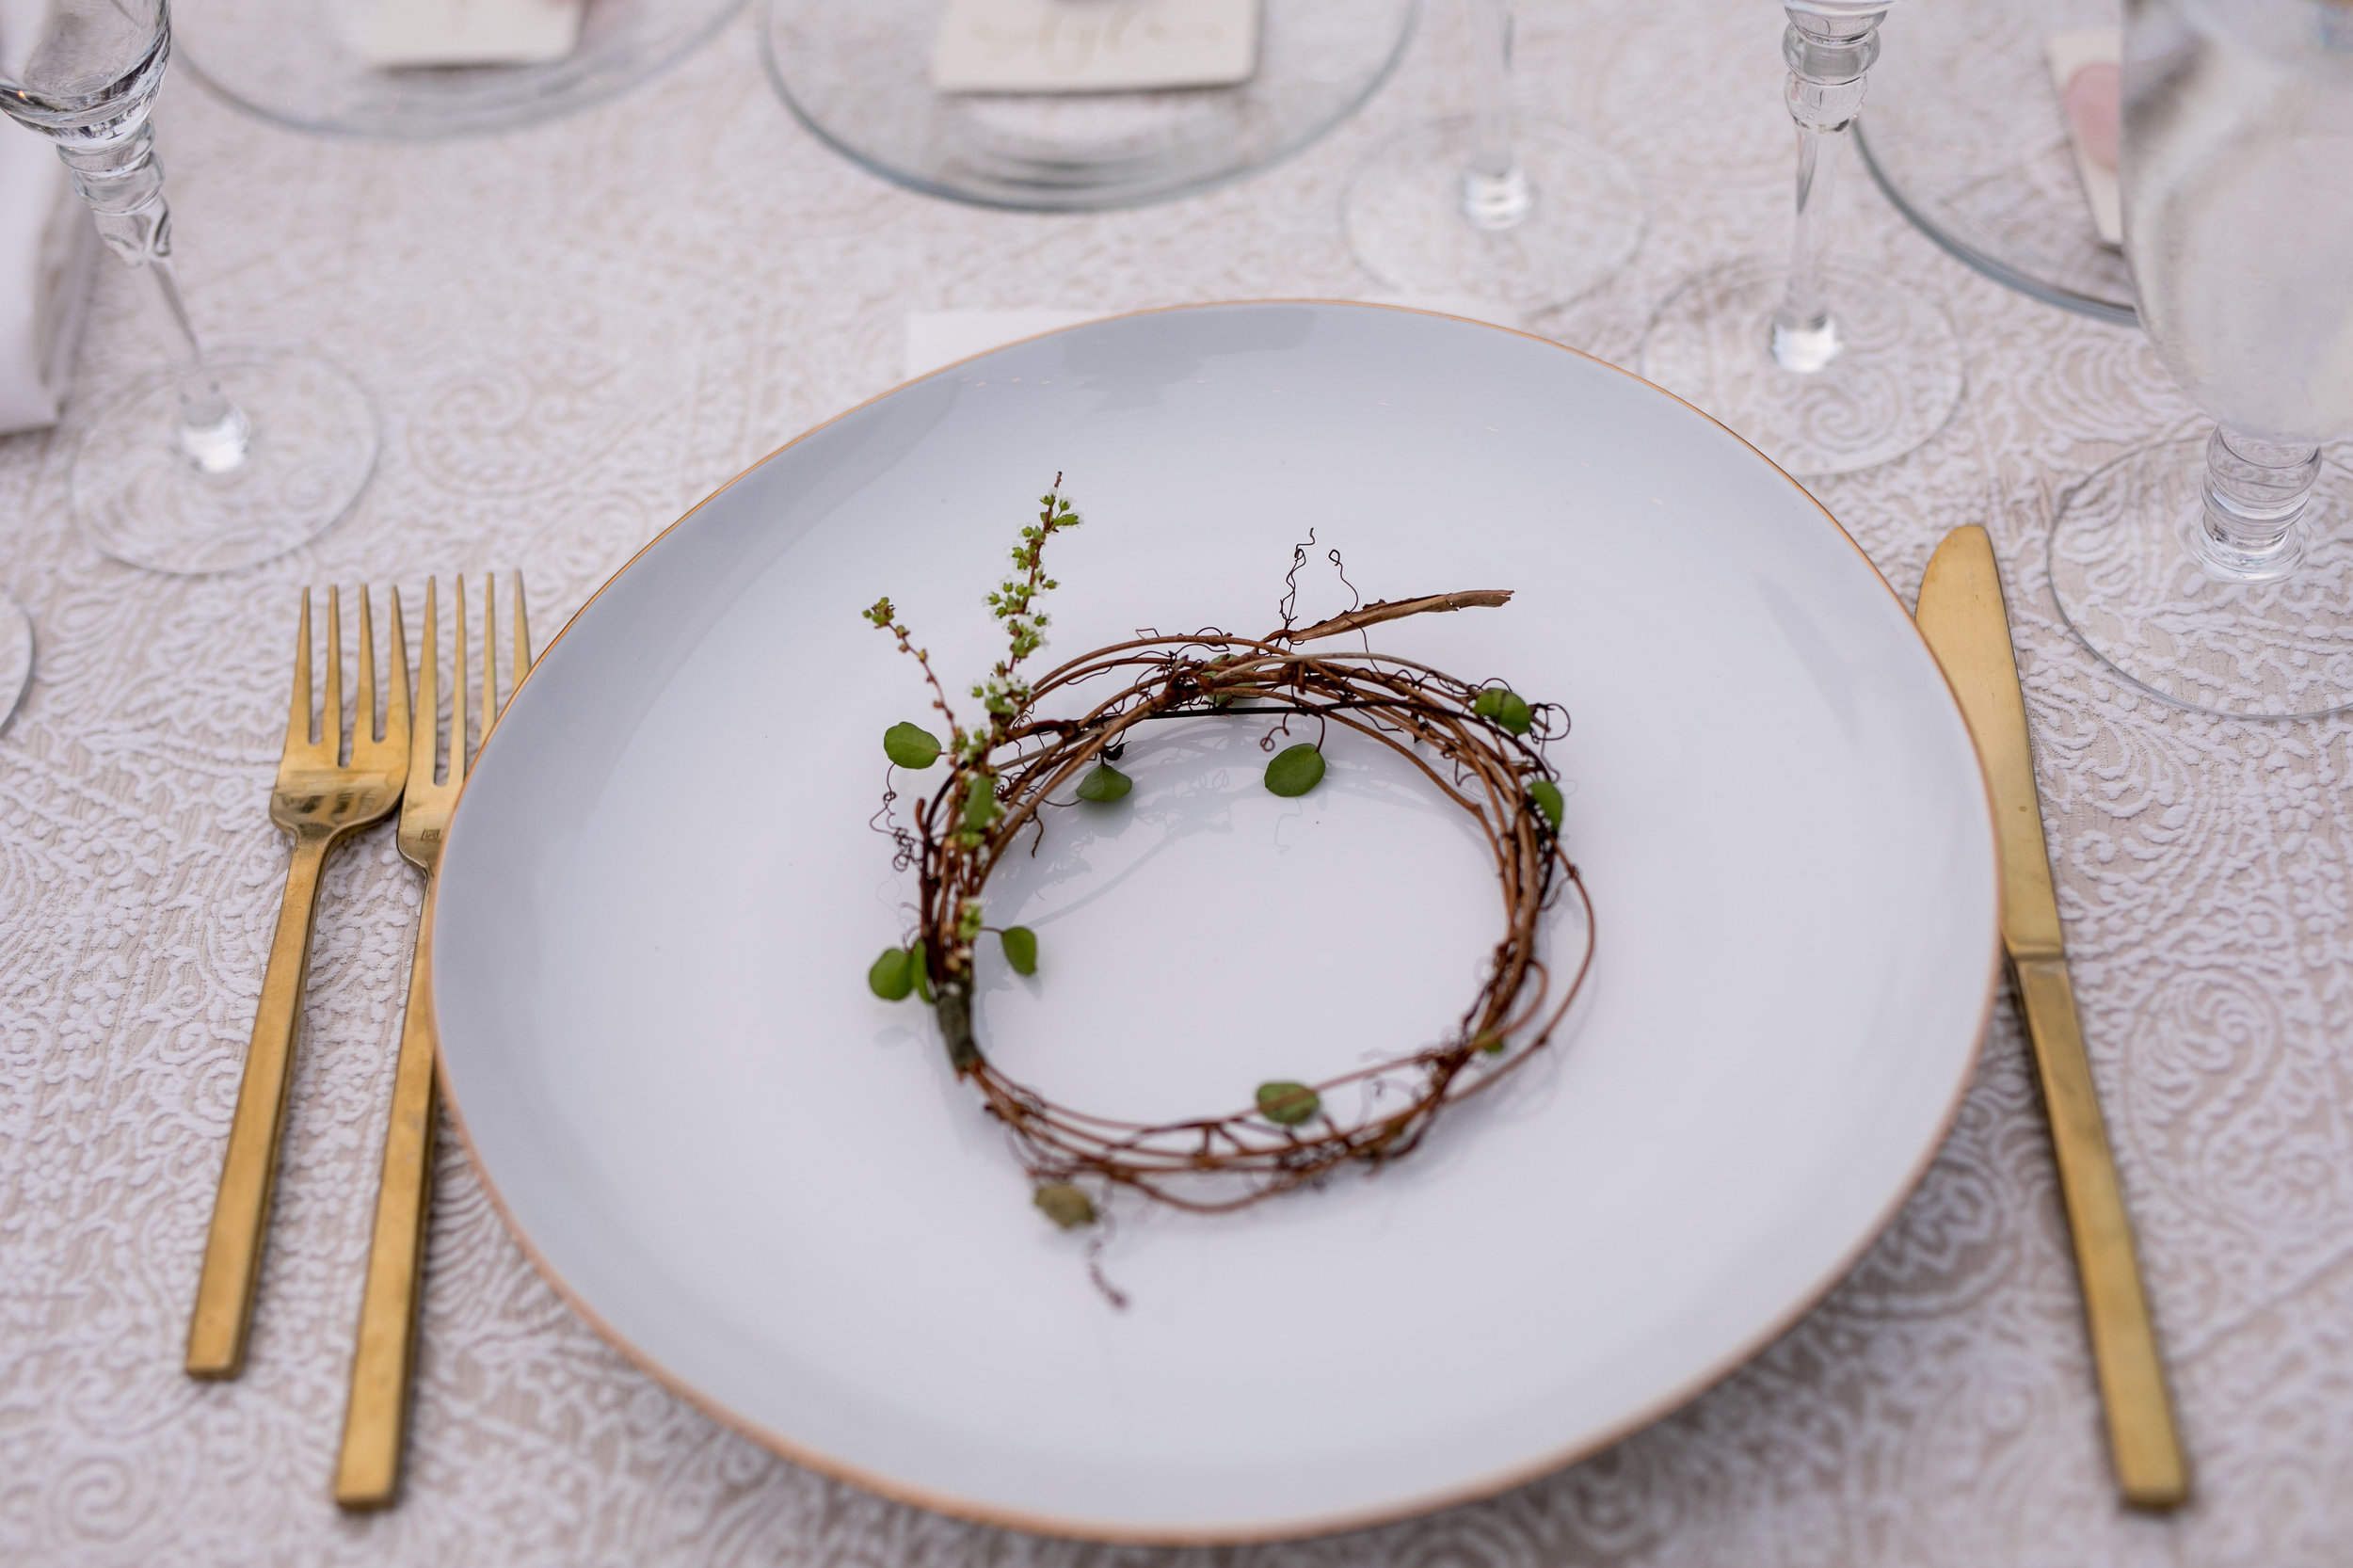 table setting with natural elements and gold flatware